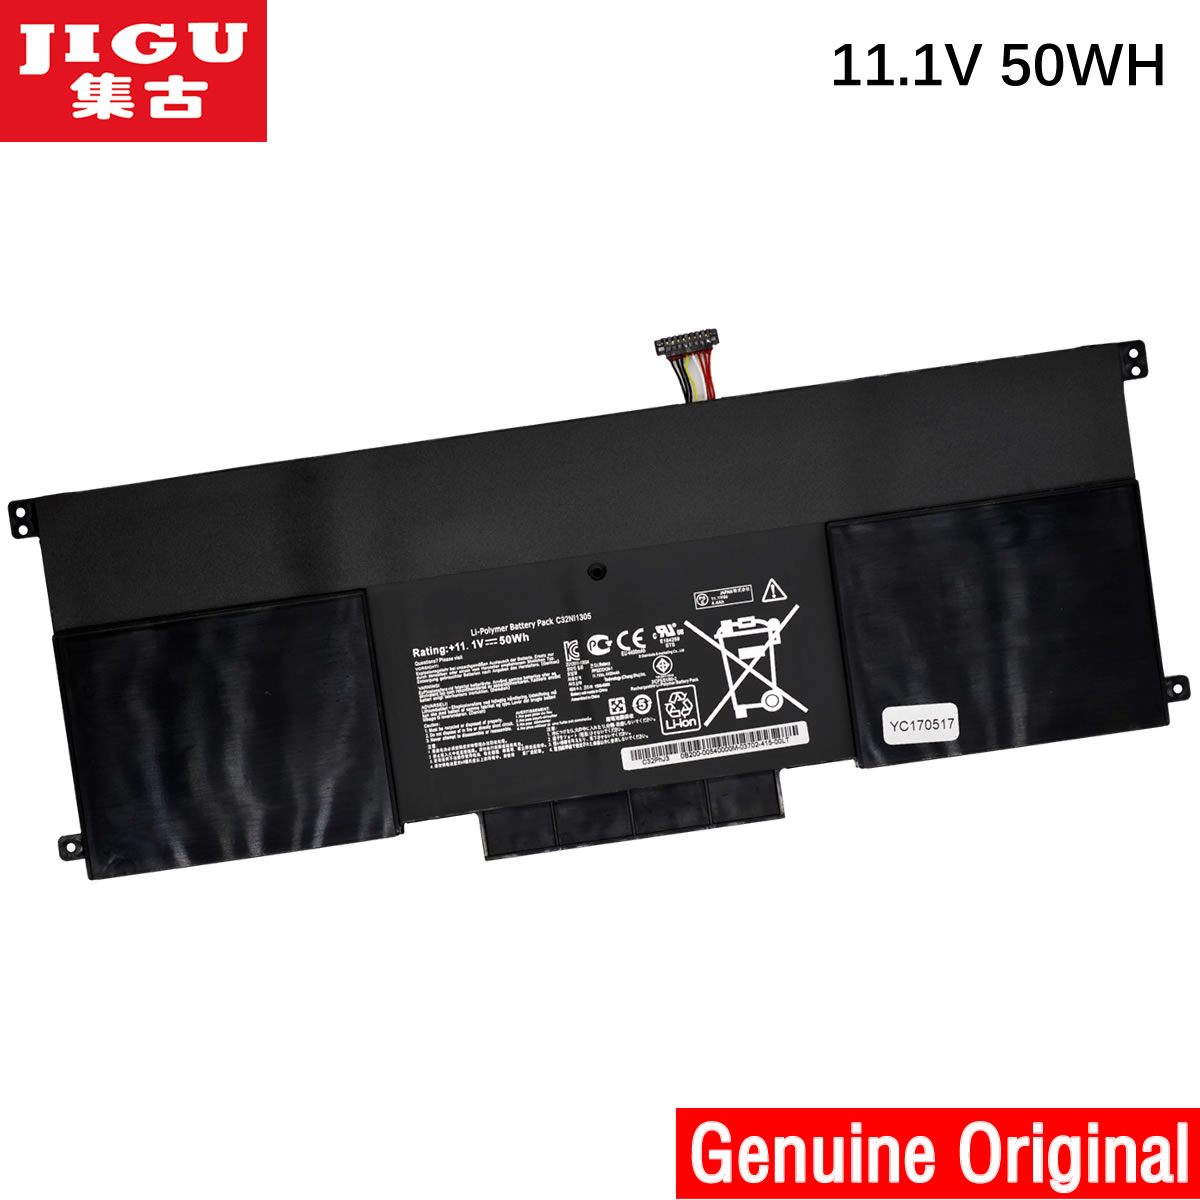 JIGU 11.1V 50WH original new C32N1305 battery for UX301LA C32N1305 Replacement batteries автокресла детские renolux автокресло new easy 2 3 total black